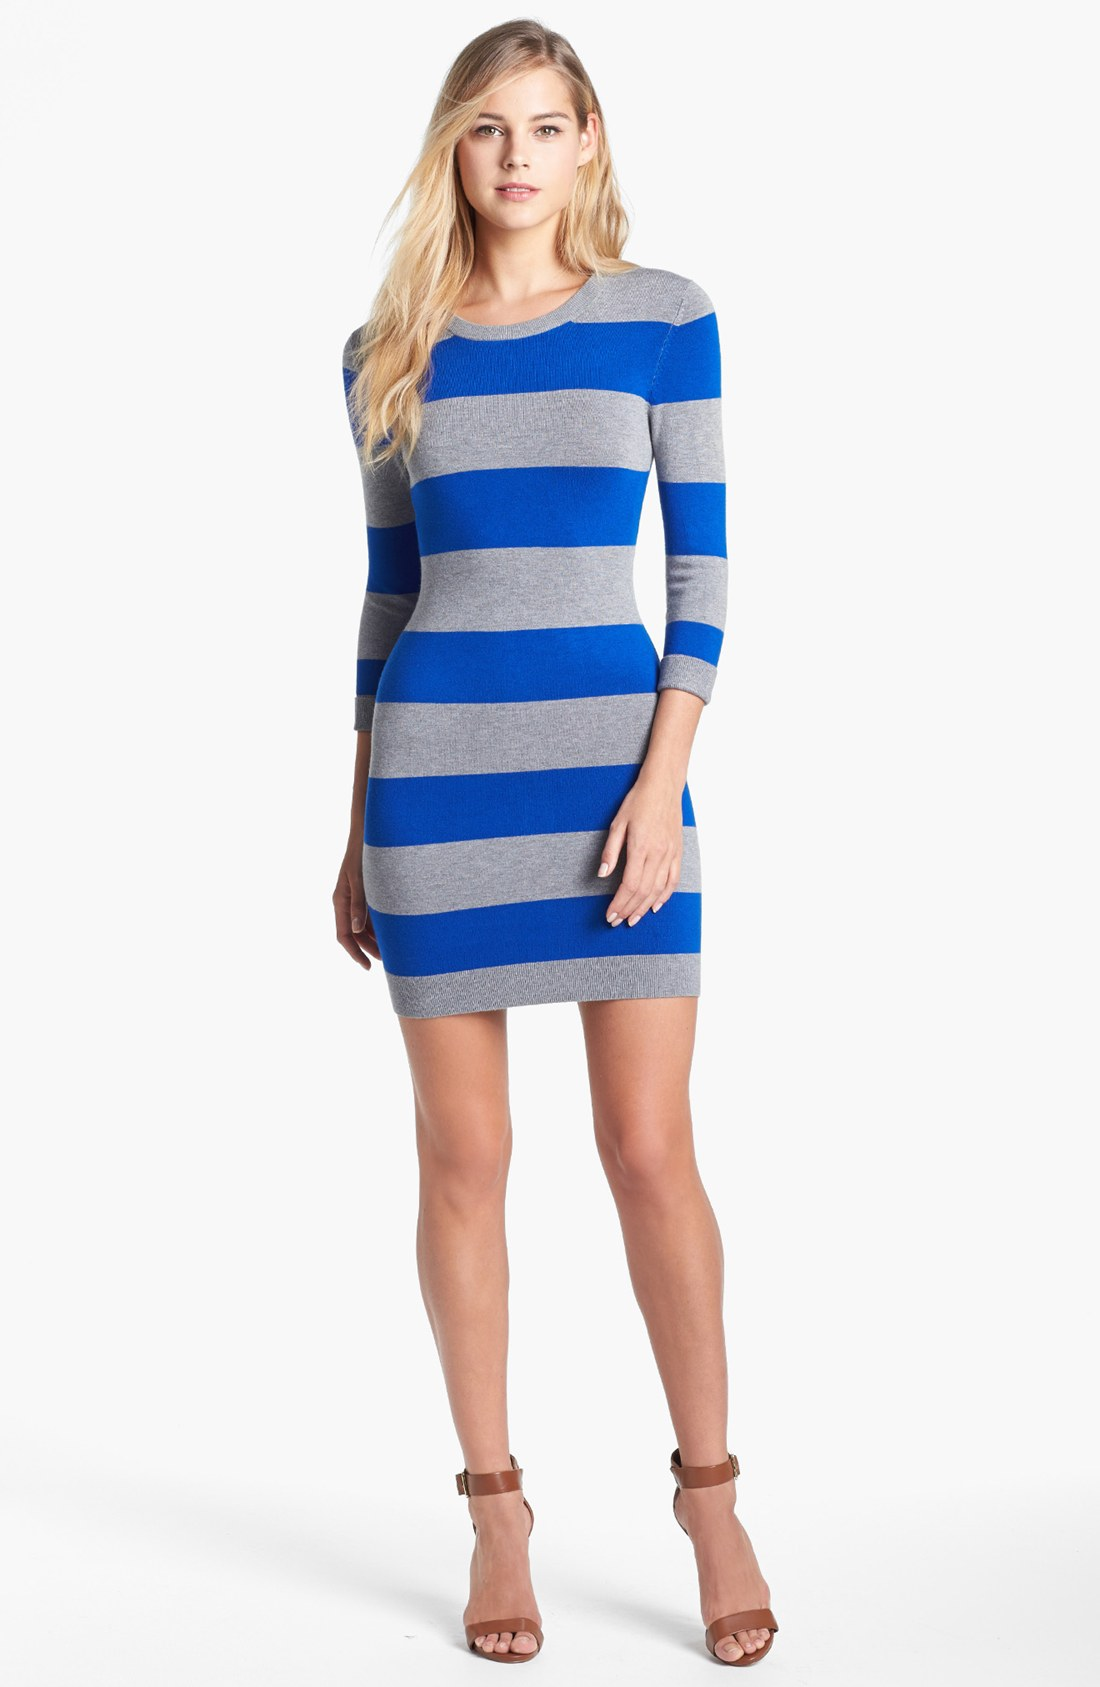 Blue Striped Sweater Dress - black dress pants